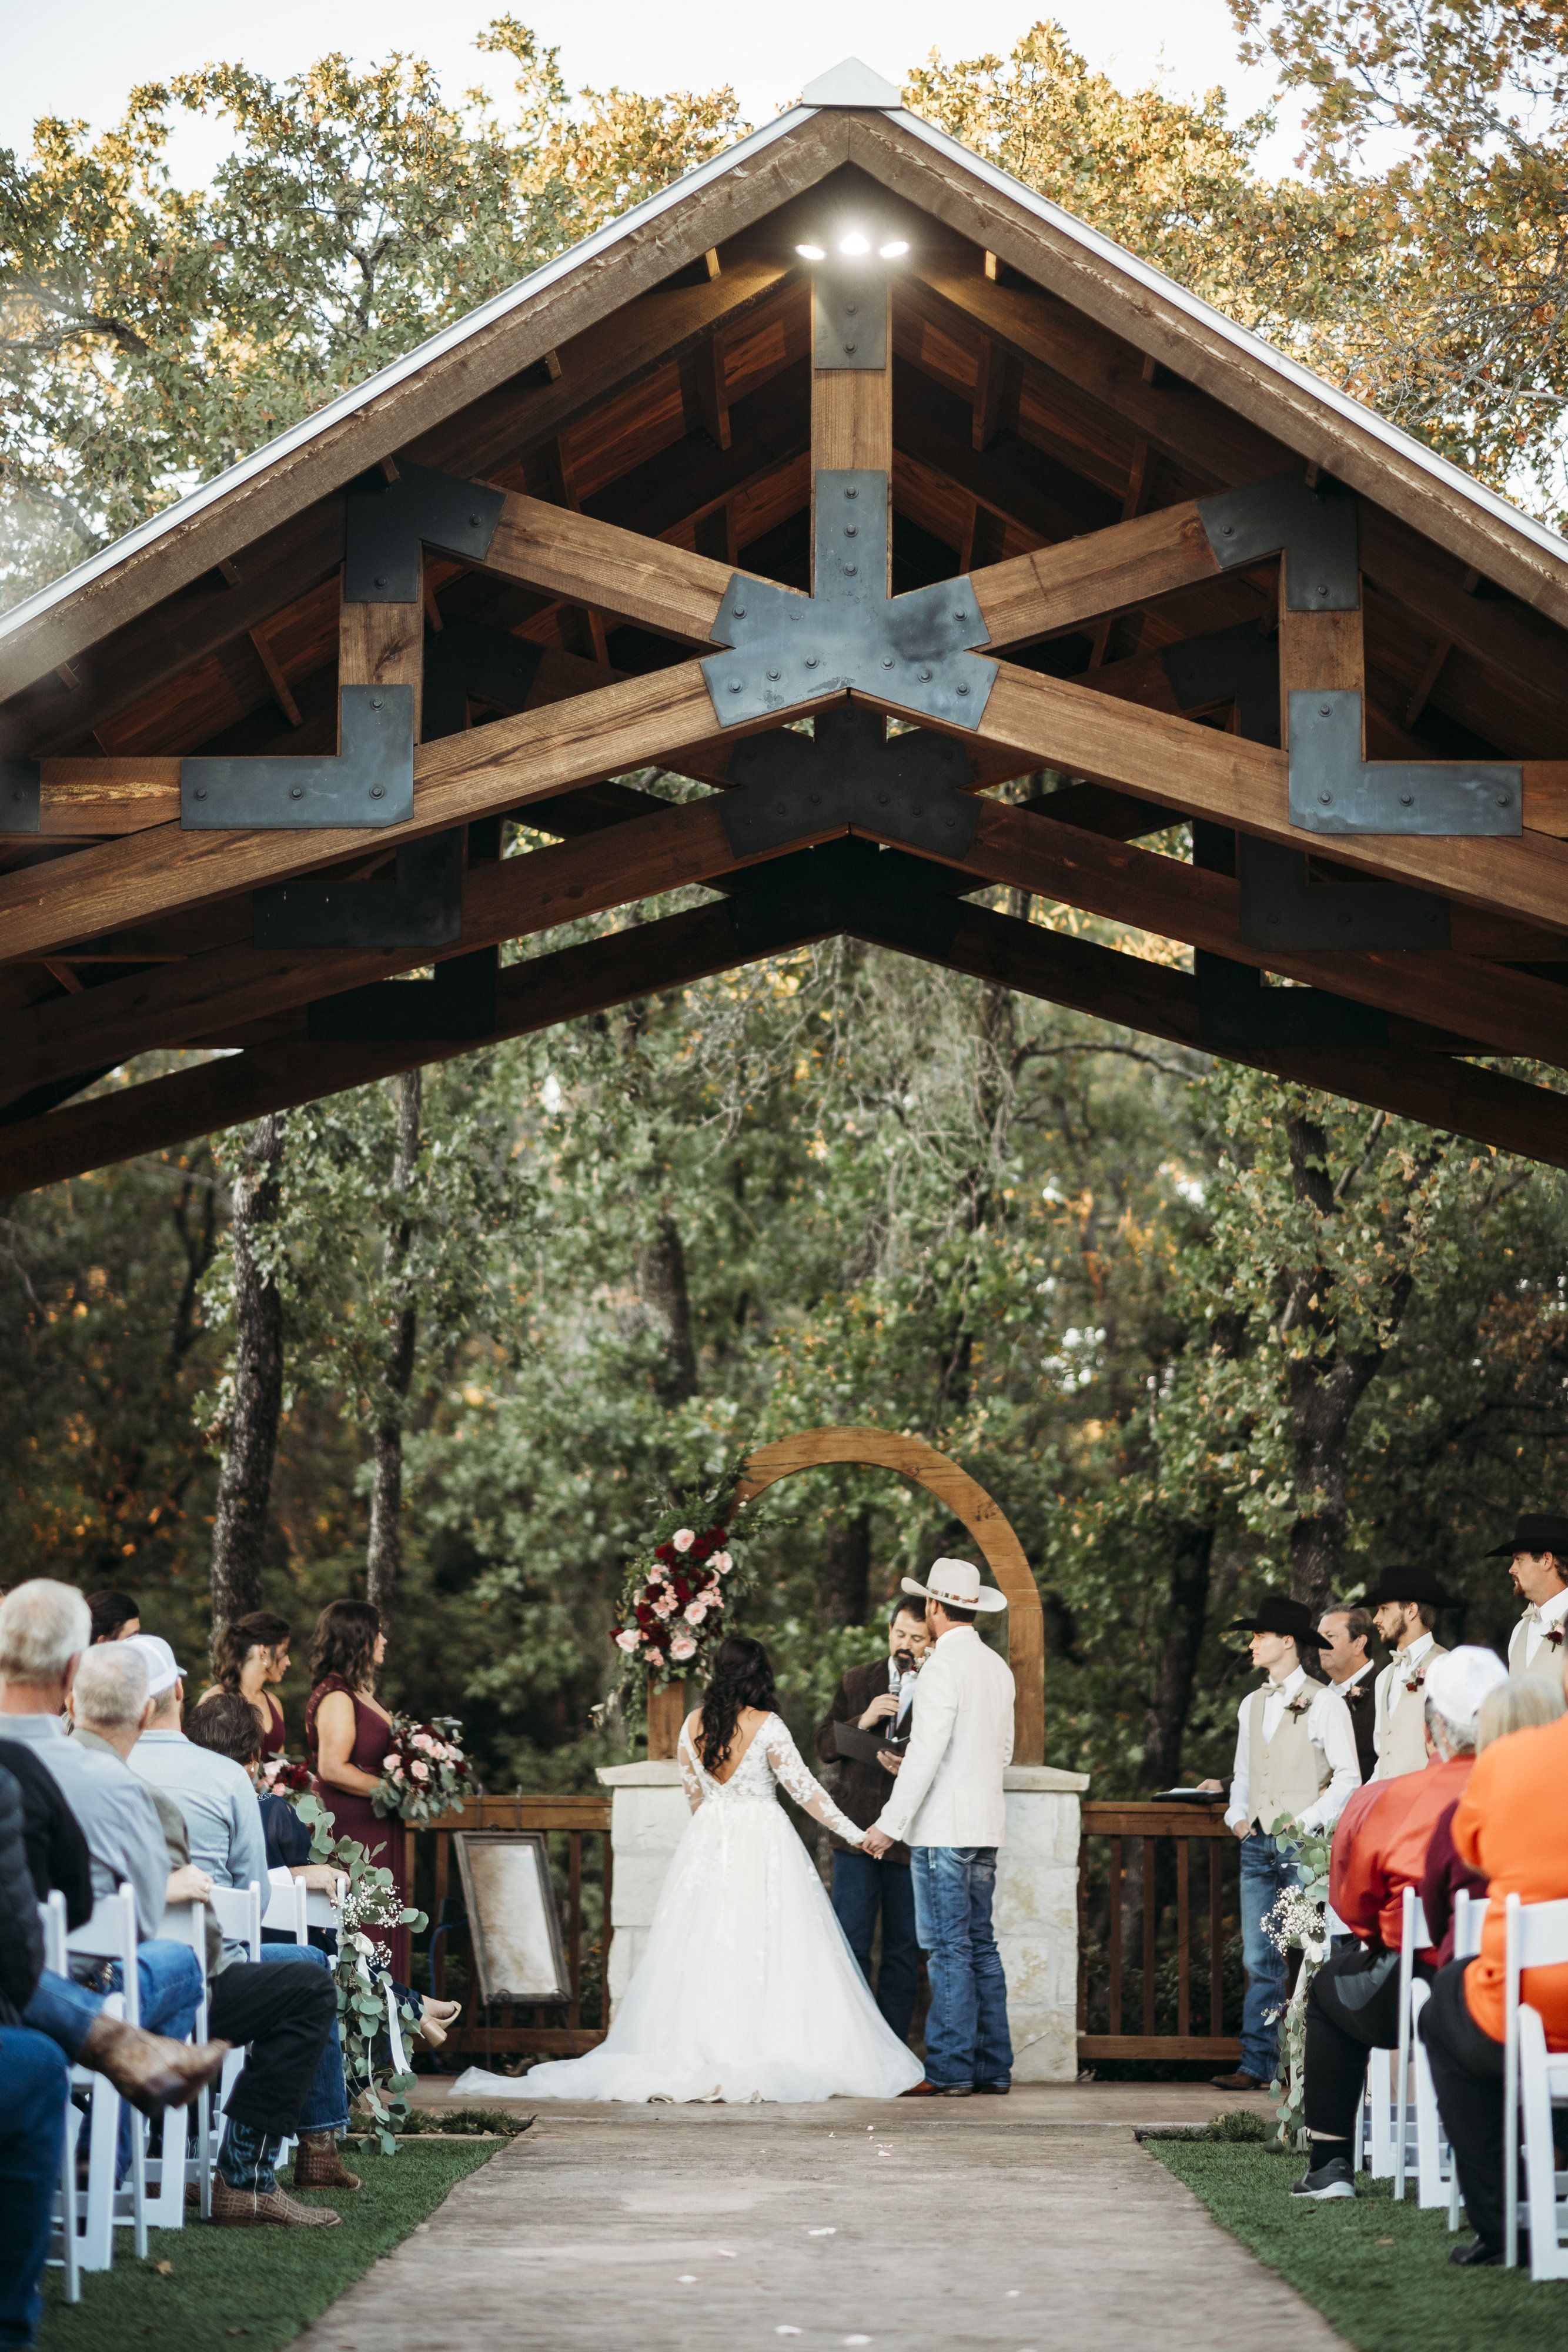 Norman Wedding Venue Springs Venue Oklahoma Wedding Venues Wedding Venues Outdoor Wedding Venues